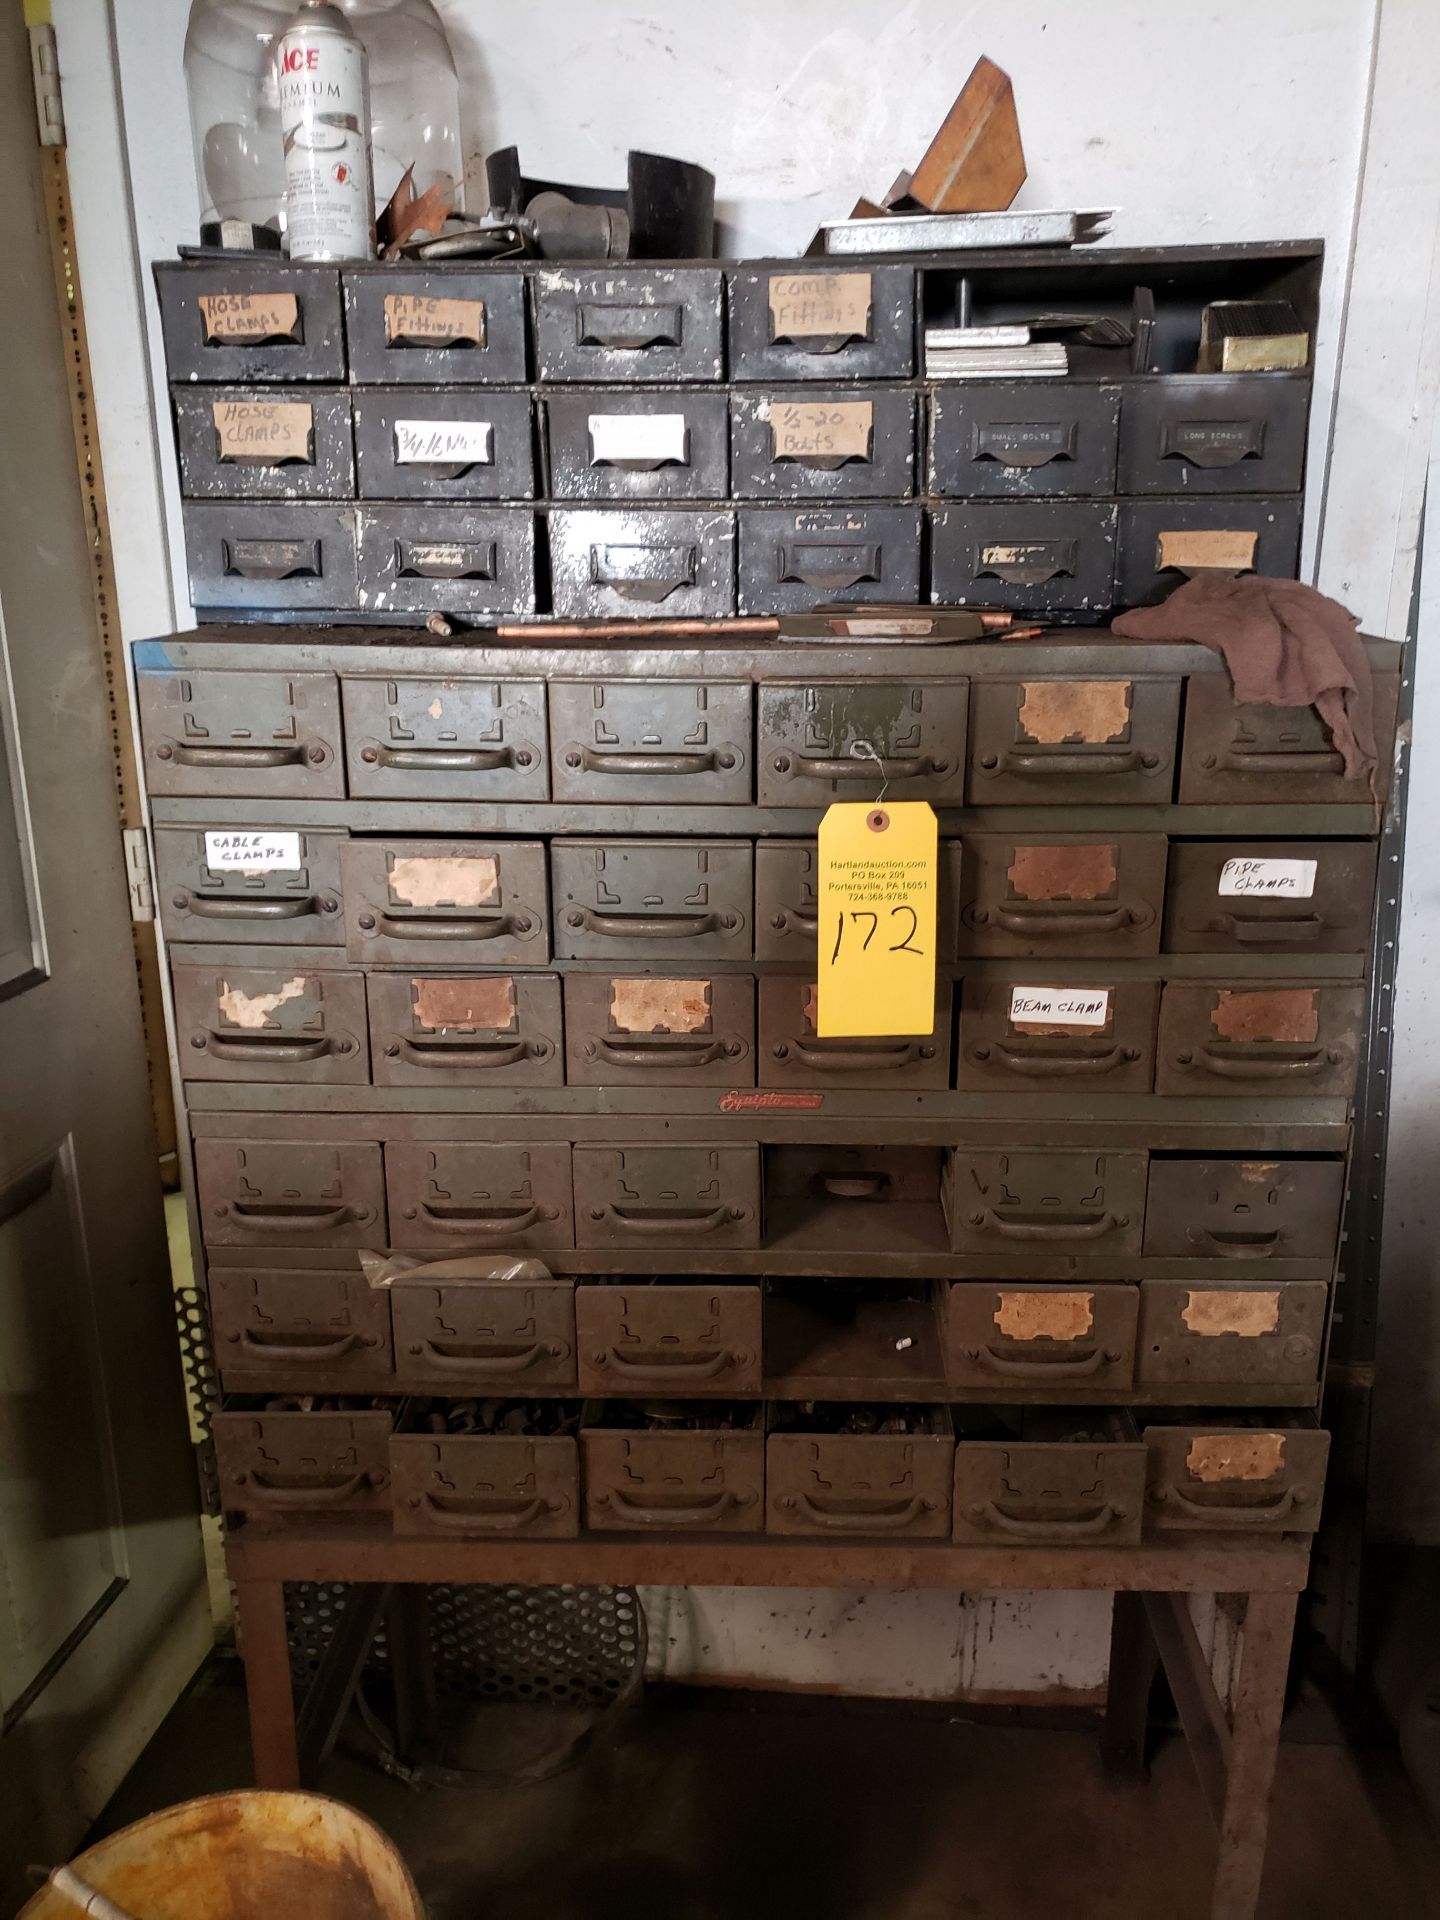 Lot 172 - STORAGE UNITS & CONTENTS FASTENERS ETC